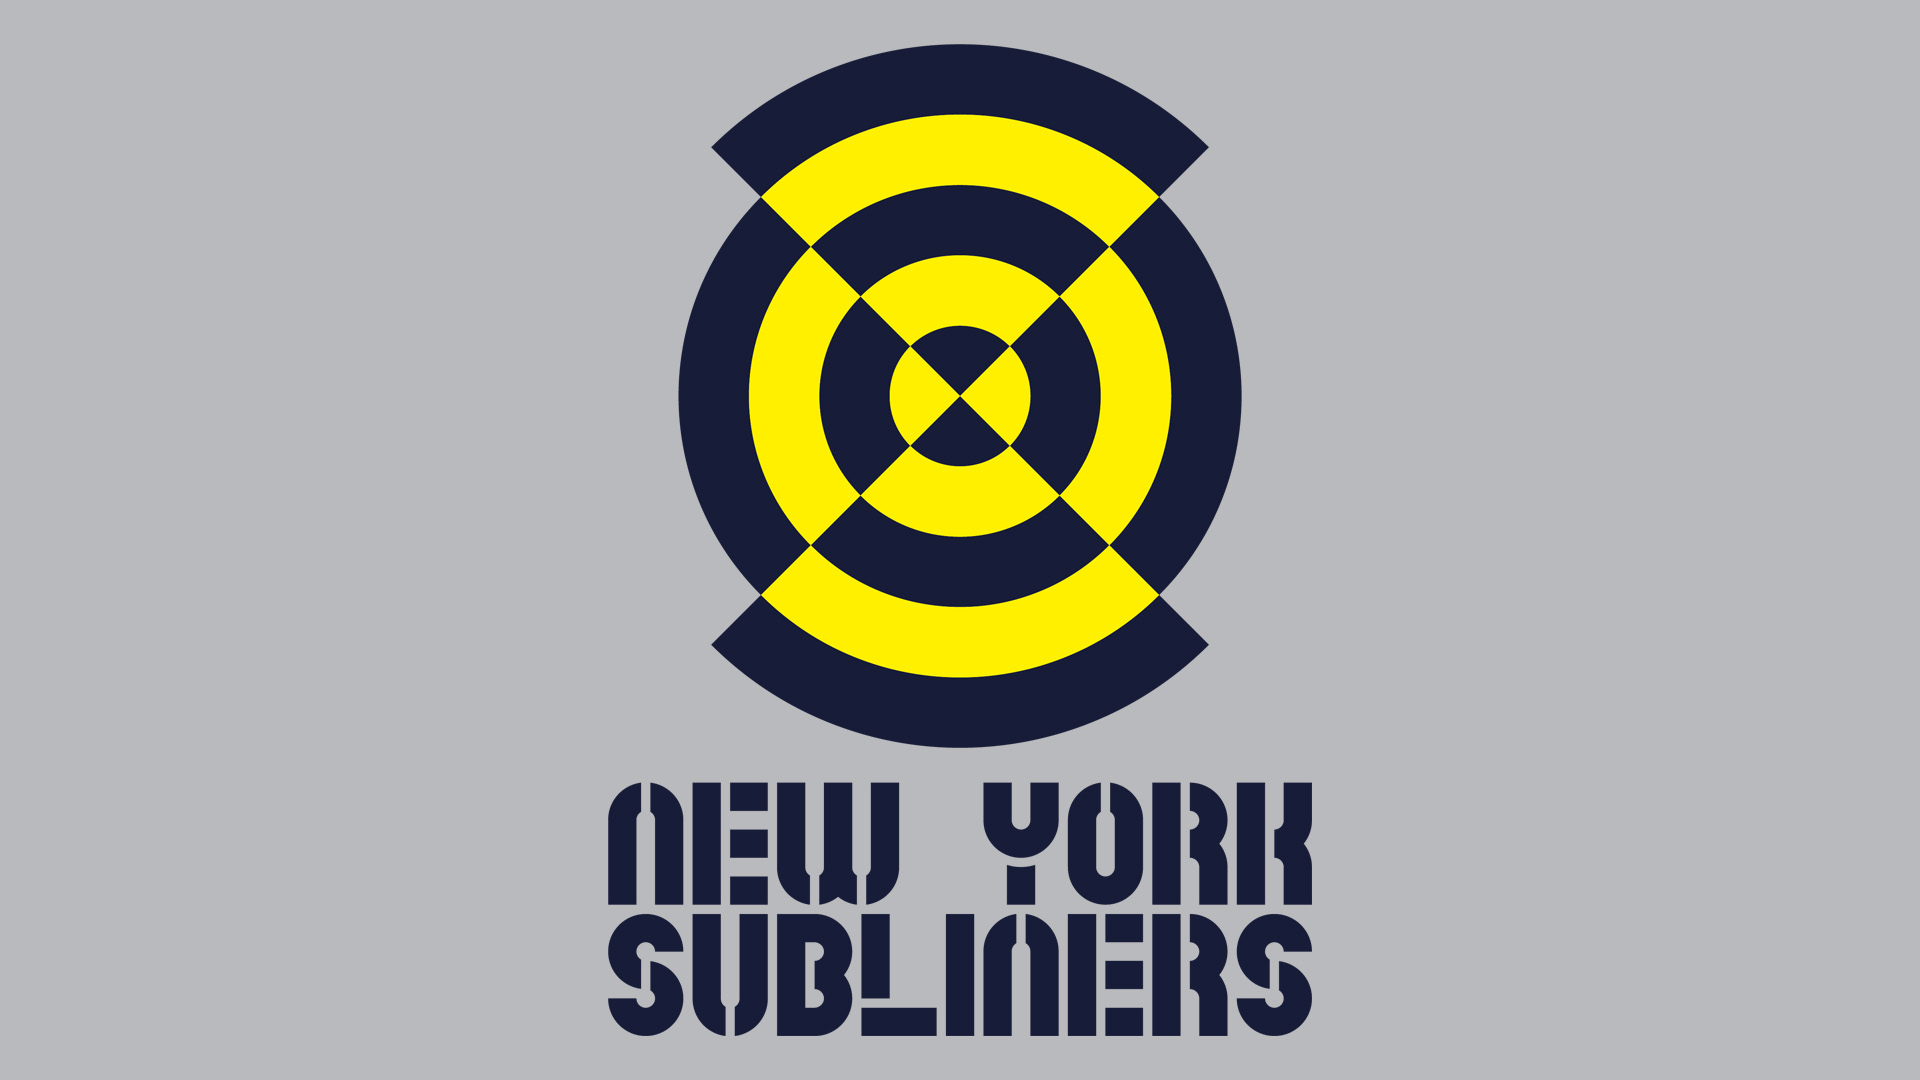 New York Subliners add Mack to Call of Duty League team